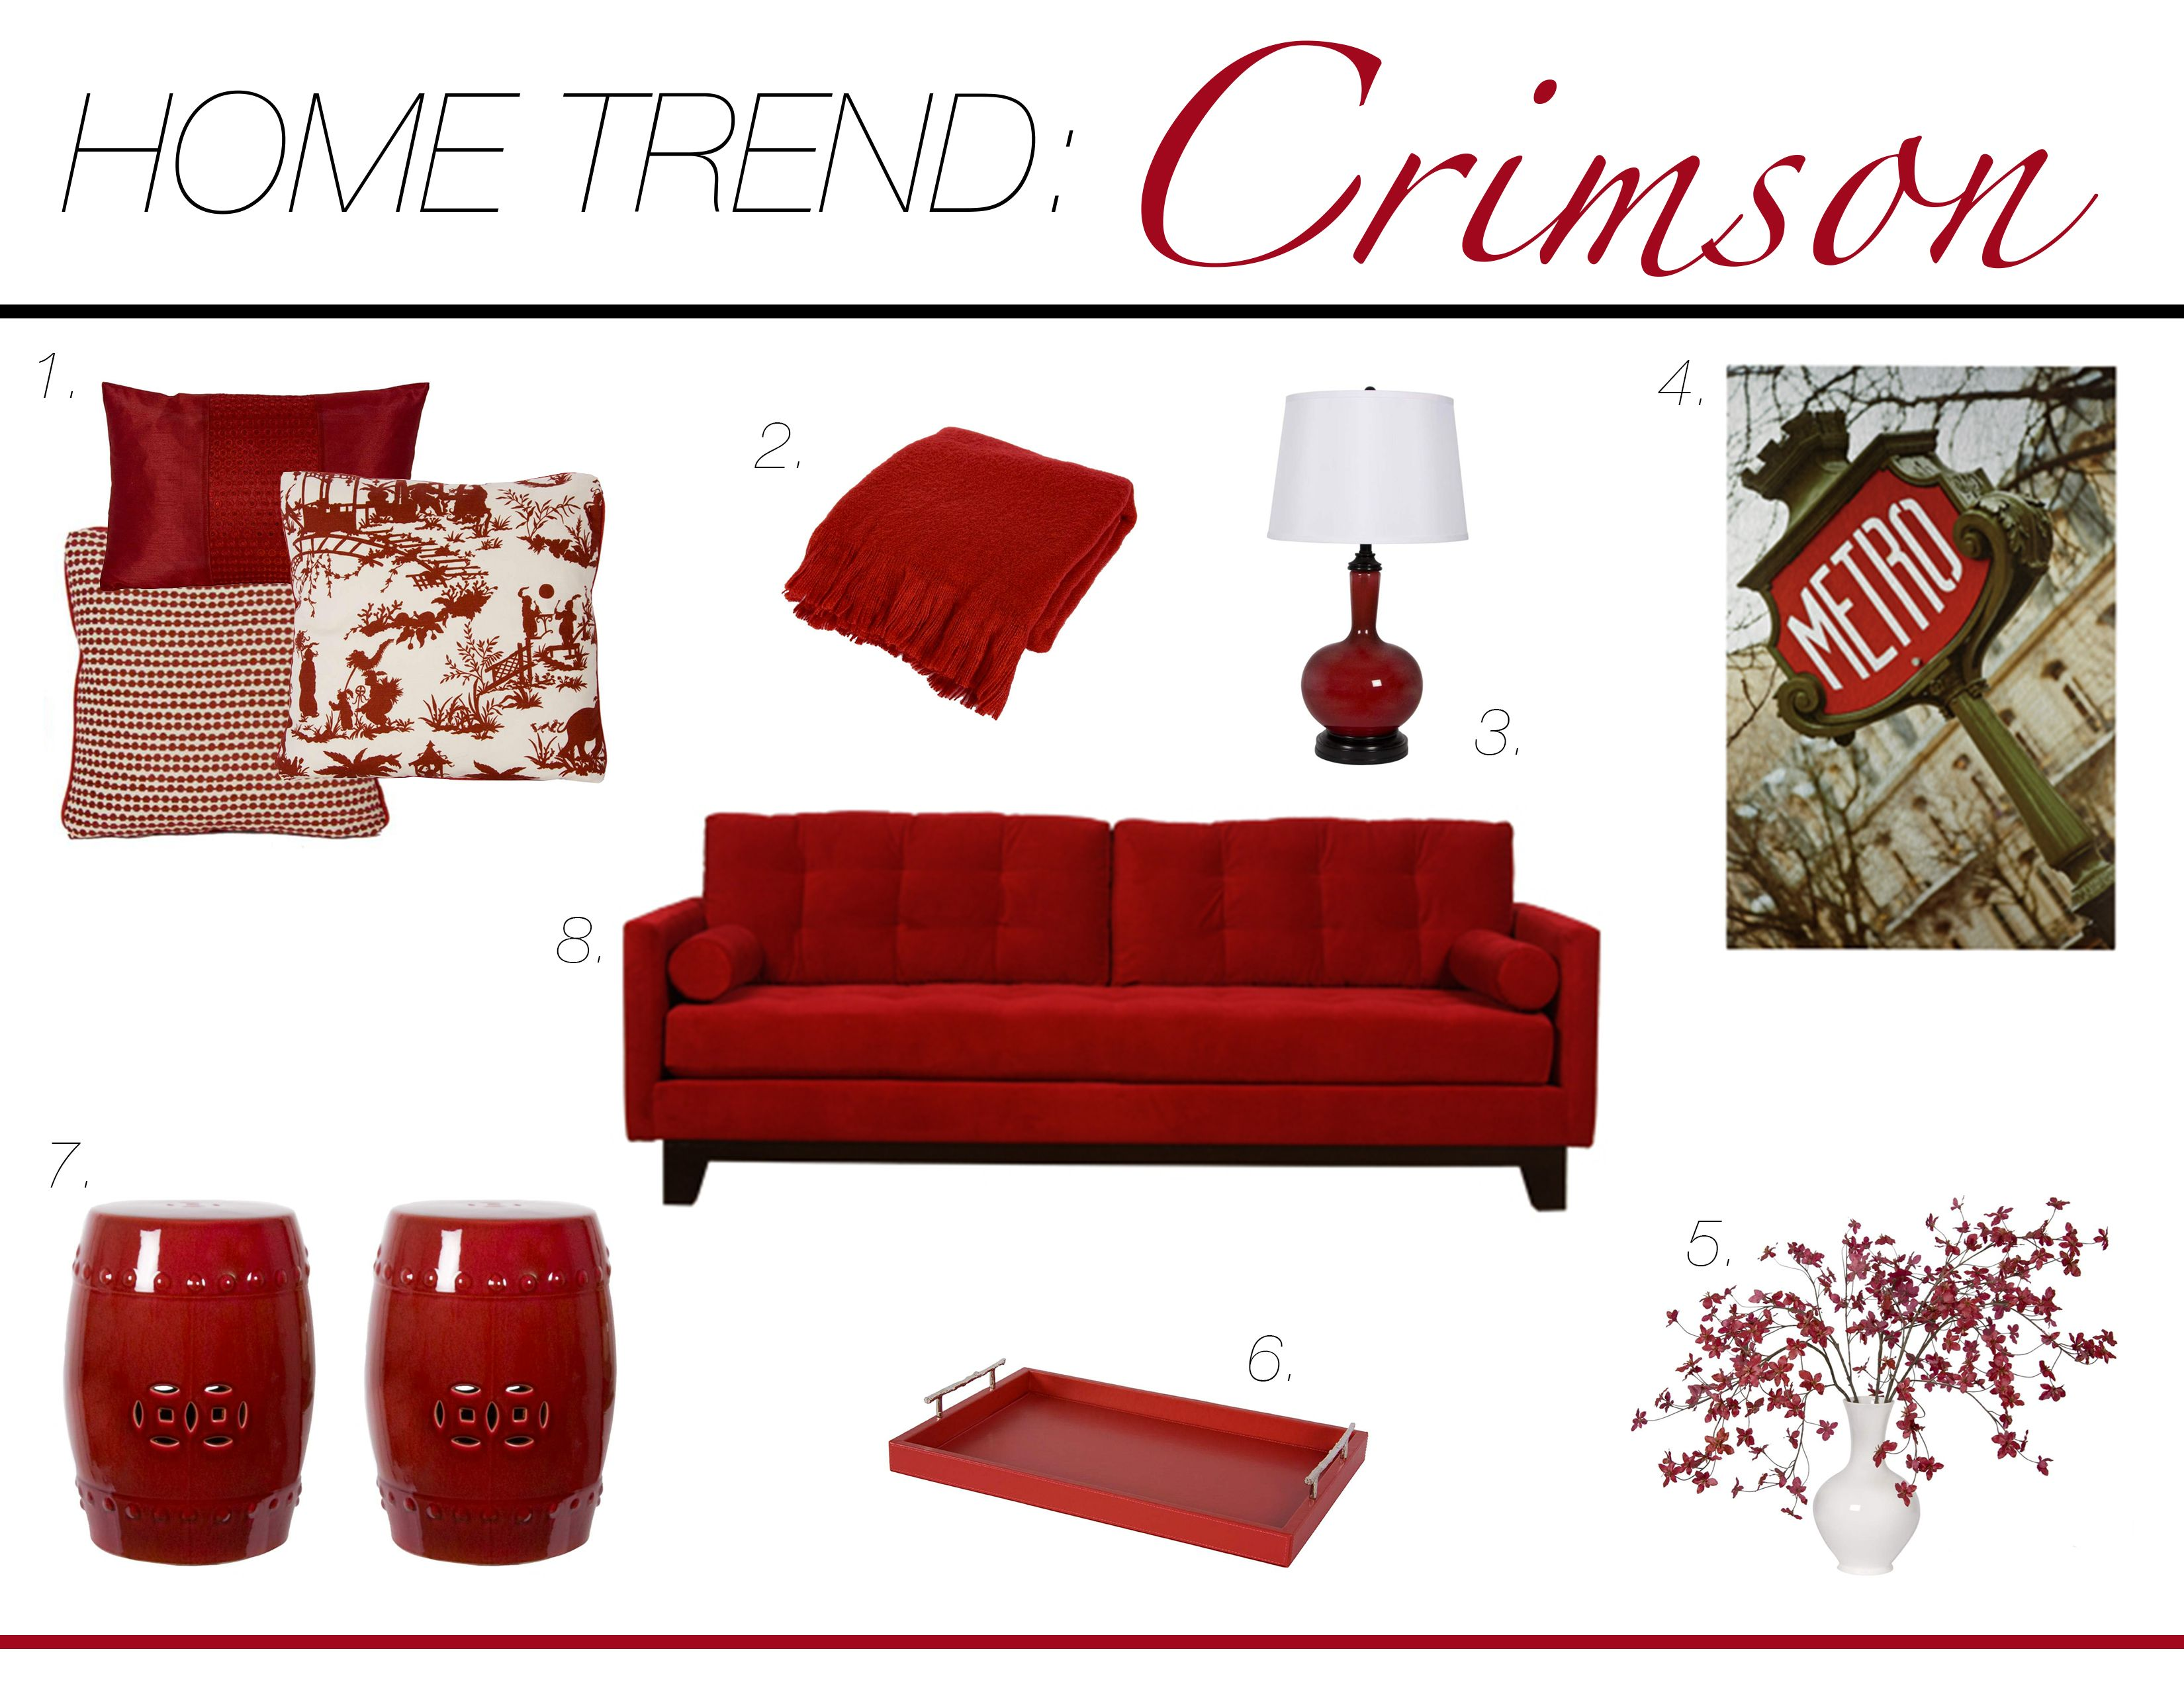 Charming Posts About Red Home Decor Written By Mountainhomedecor